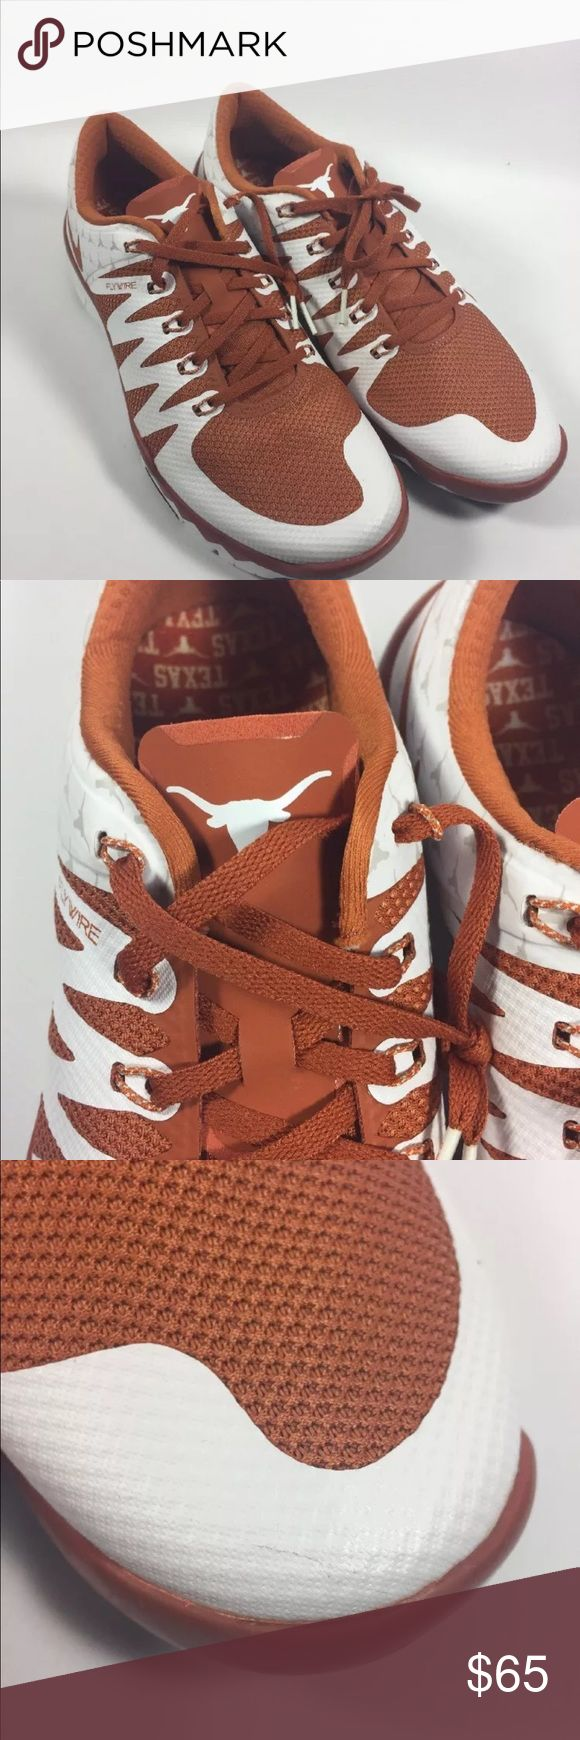 Nike Free Trainer 5.0 V6 AMP Texas Longhorns New NIKE FREE TRAINER 5.0 V6 AMP UNIVERSITY OF TEXAS LONGHORNS 723939 800 11.5.  Might have a few marks from storage but shoes have never been worn and are in new condition. Please see all pictures. Nike Shoes Sneakers